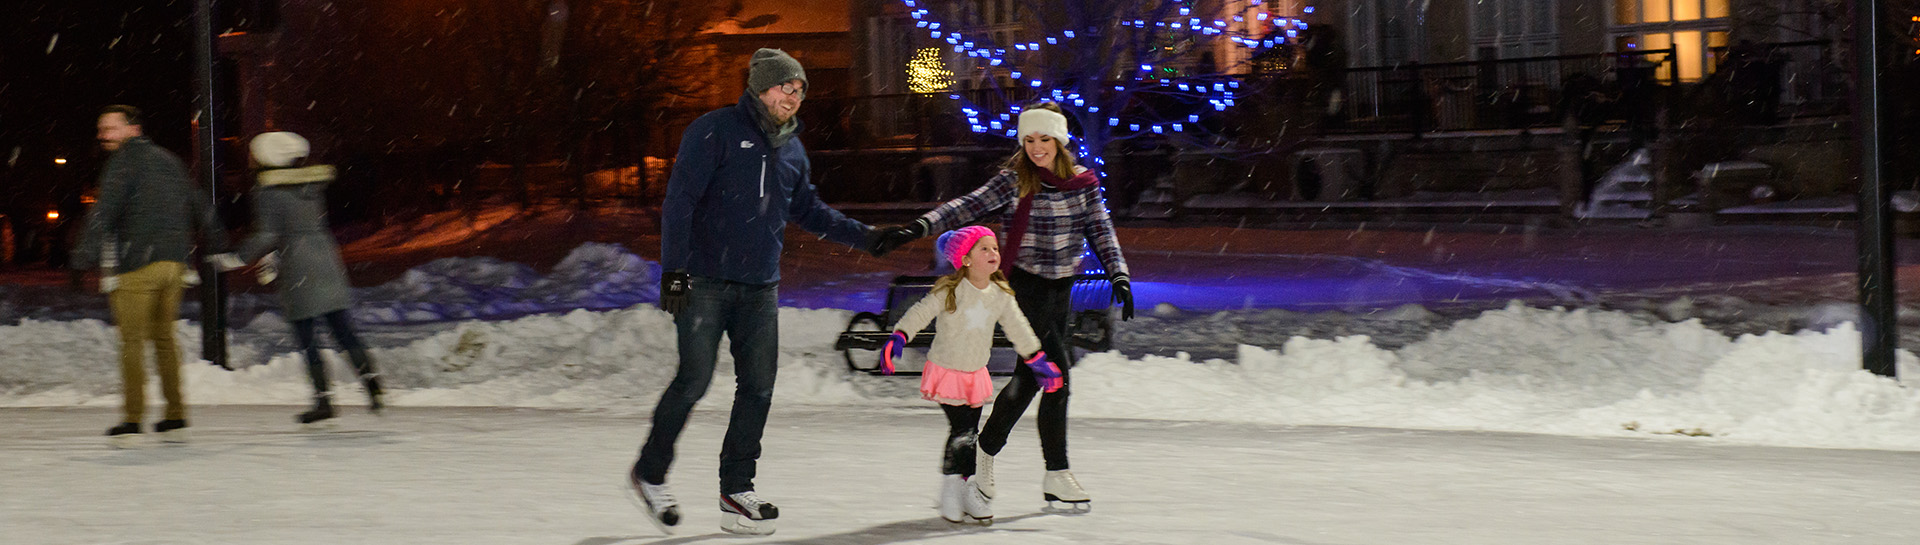 mother and father with young daughter skating on outdoor rink with Christmas lights at night